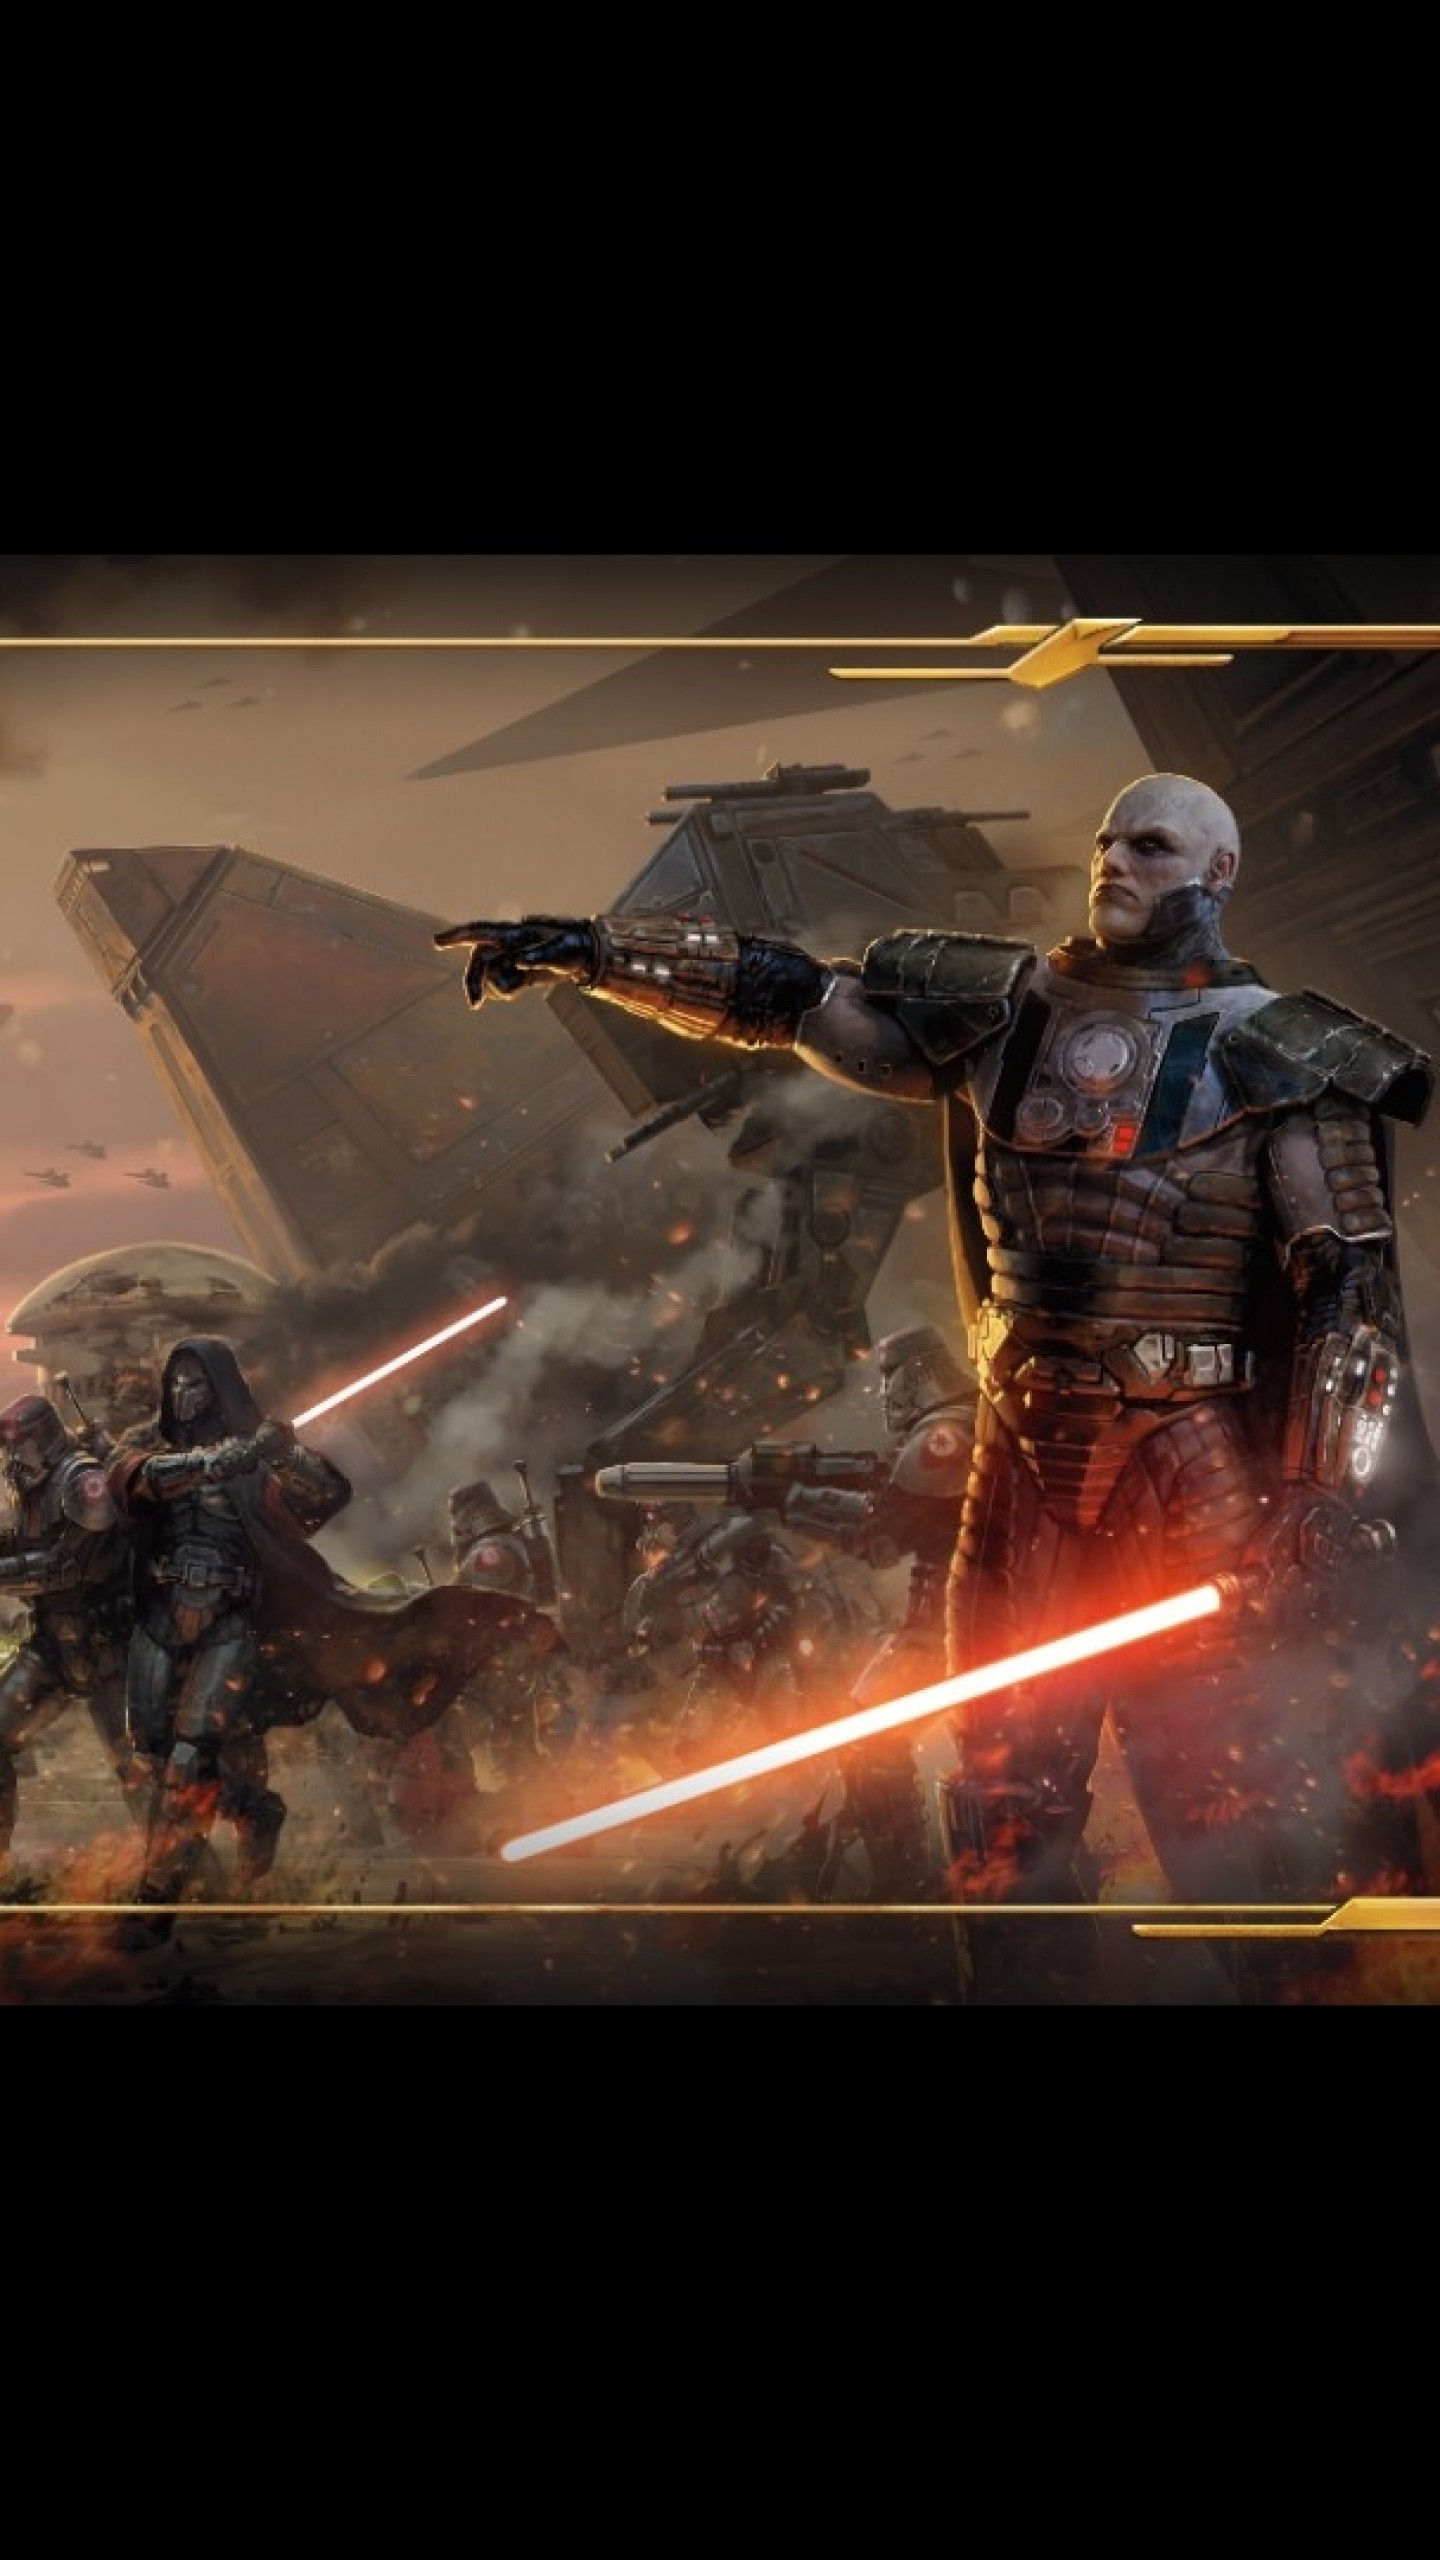 1440x2560 Preview wallpaper star wars the old republic, battle, gun, lightsabers,  game